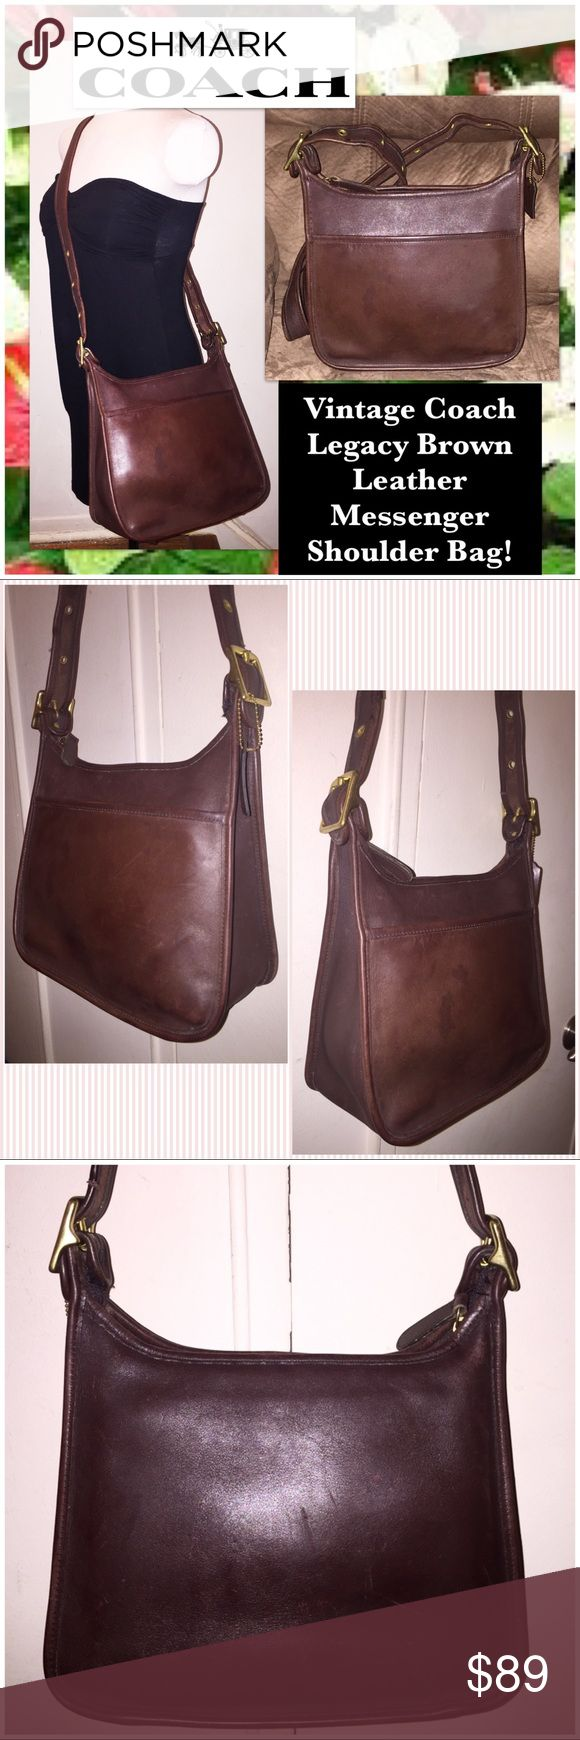 """VTG Coach Legacy Leather Messenger Shoulder Bag! Vintage Coach Legacy Brown Leather Messenger Shoulder Bag! 100% authentic, made in USA, front ext slip pocket, brown leather adj shoulder (up to 20.5"""" clearance strap), brass hardware, int zip pocket, 3 int slip pockets, top zip closure, unlined, Coach hang tag, creed & serial No. on inside. G0D-9966. Measurements: 10"""" high (side), 9 1/2"""" high (mid) x 11"""" across x 4 1/2"""" wide (bottom). Ret:$329 Minor ext marks. VG cond. Offers welcome. Coach…"""